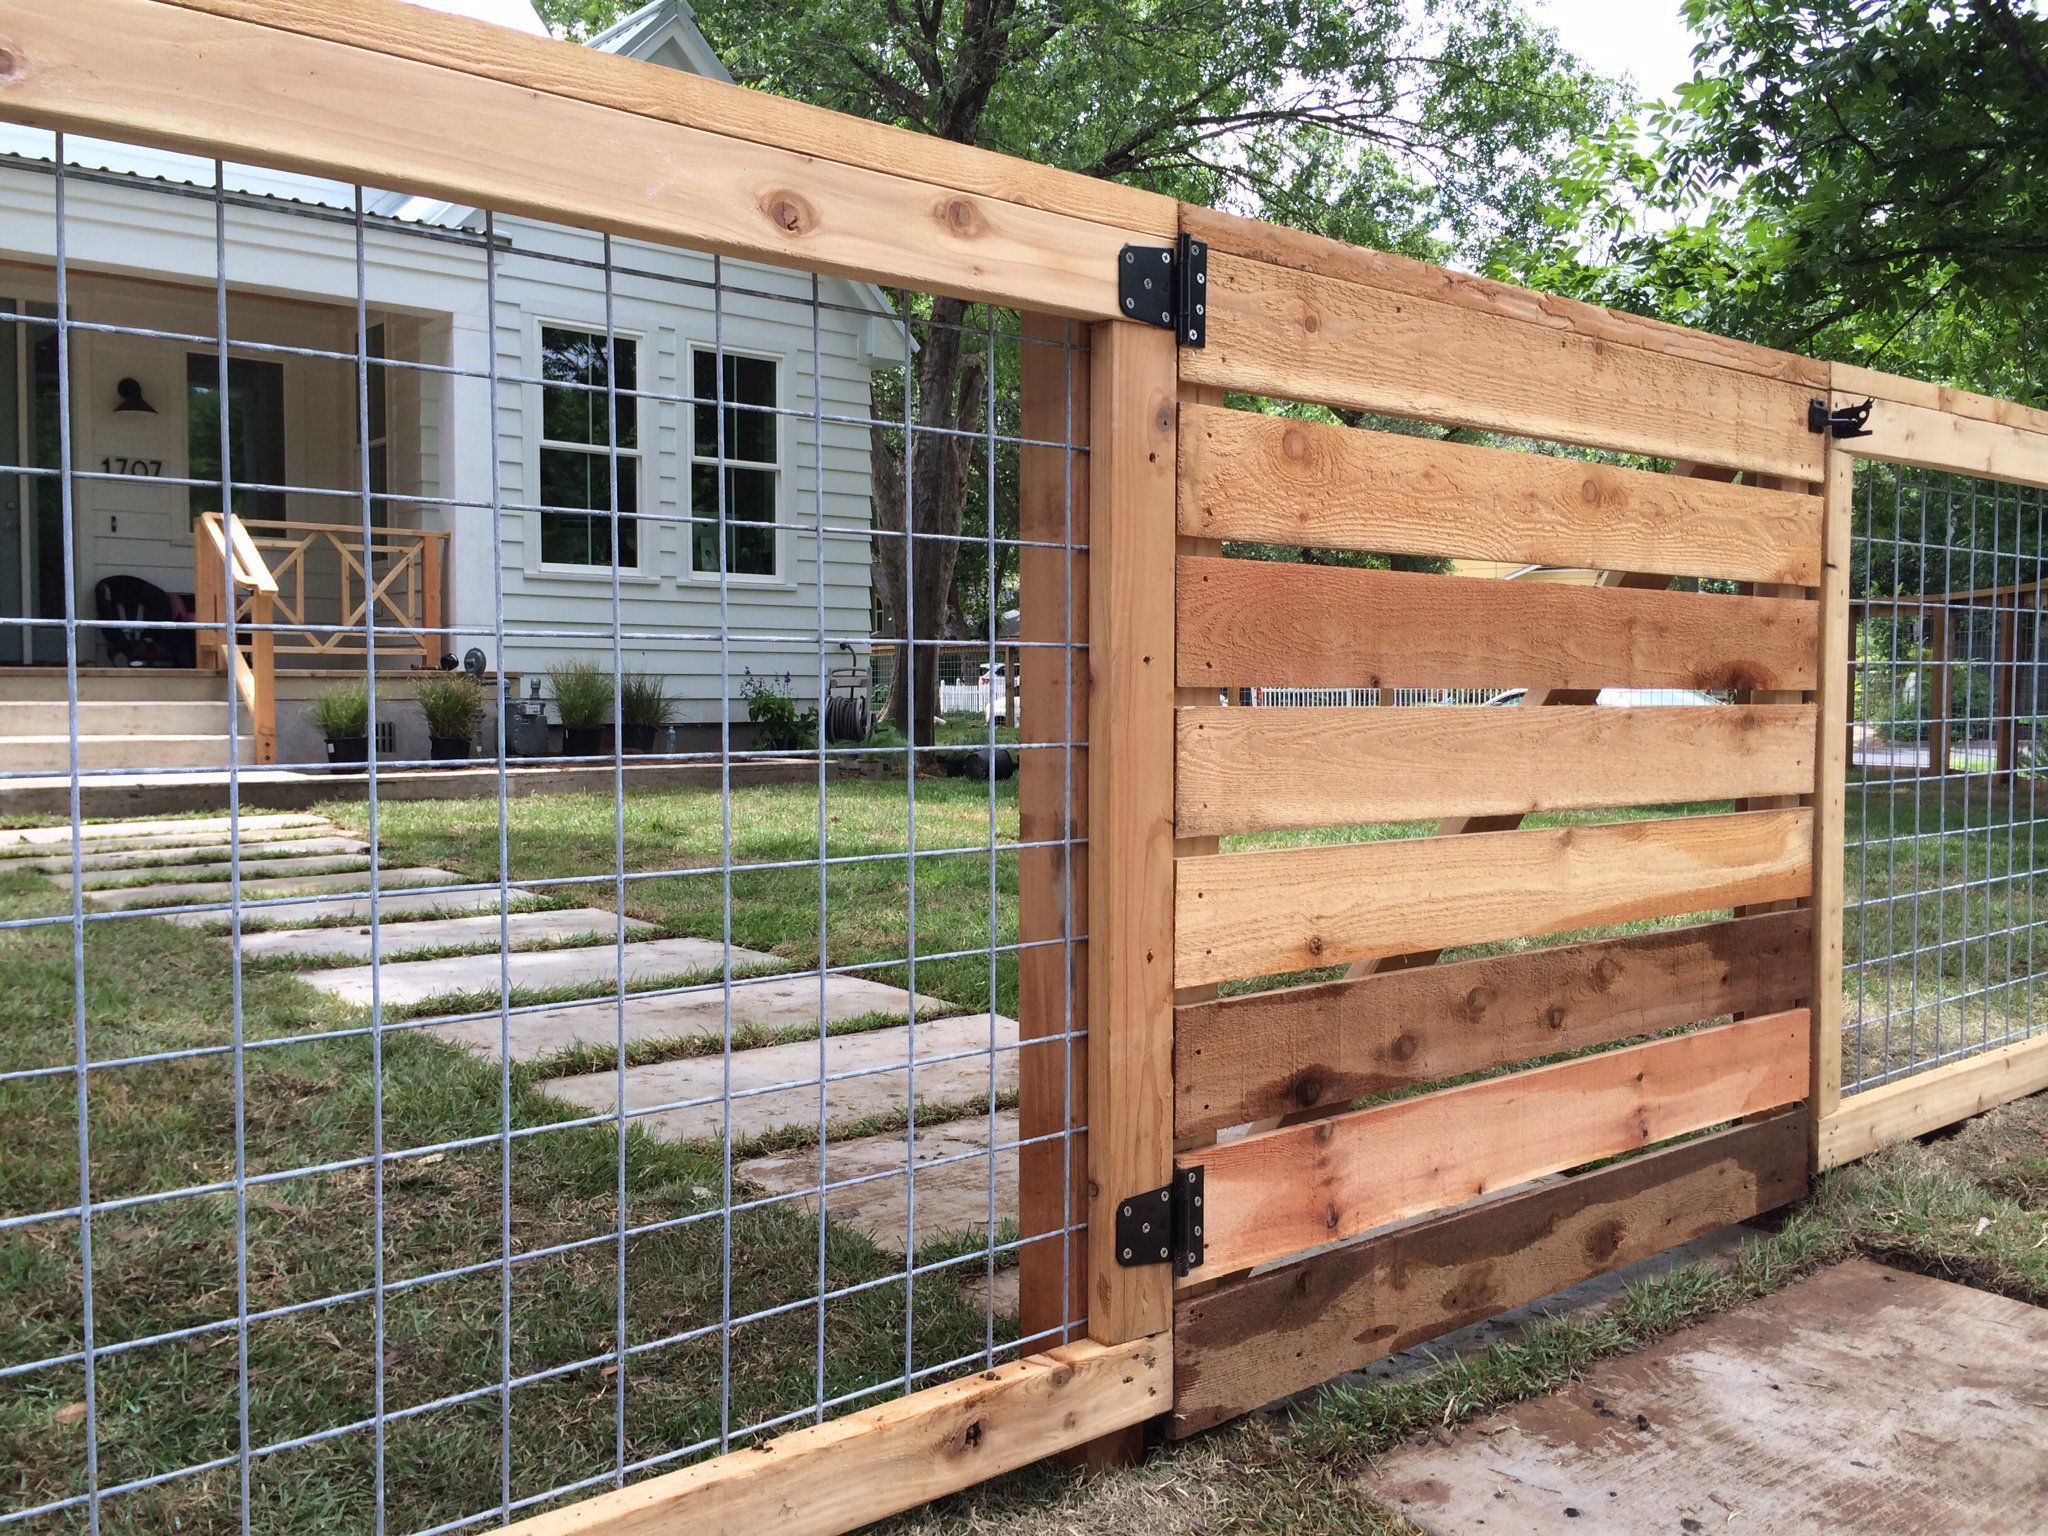 17 Awesome Hog Wire Fence Design Ideas For Your Backyard With